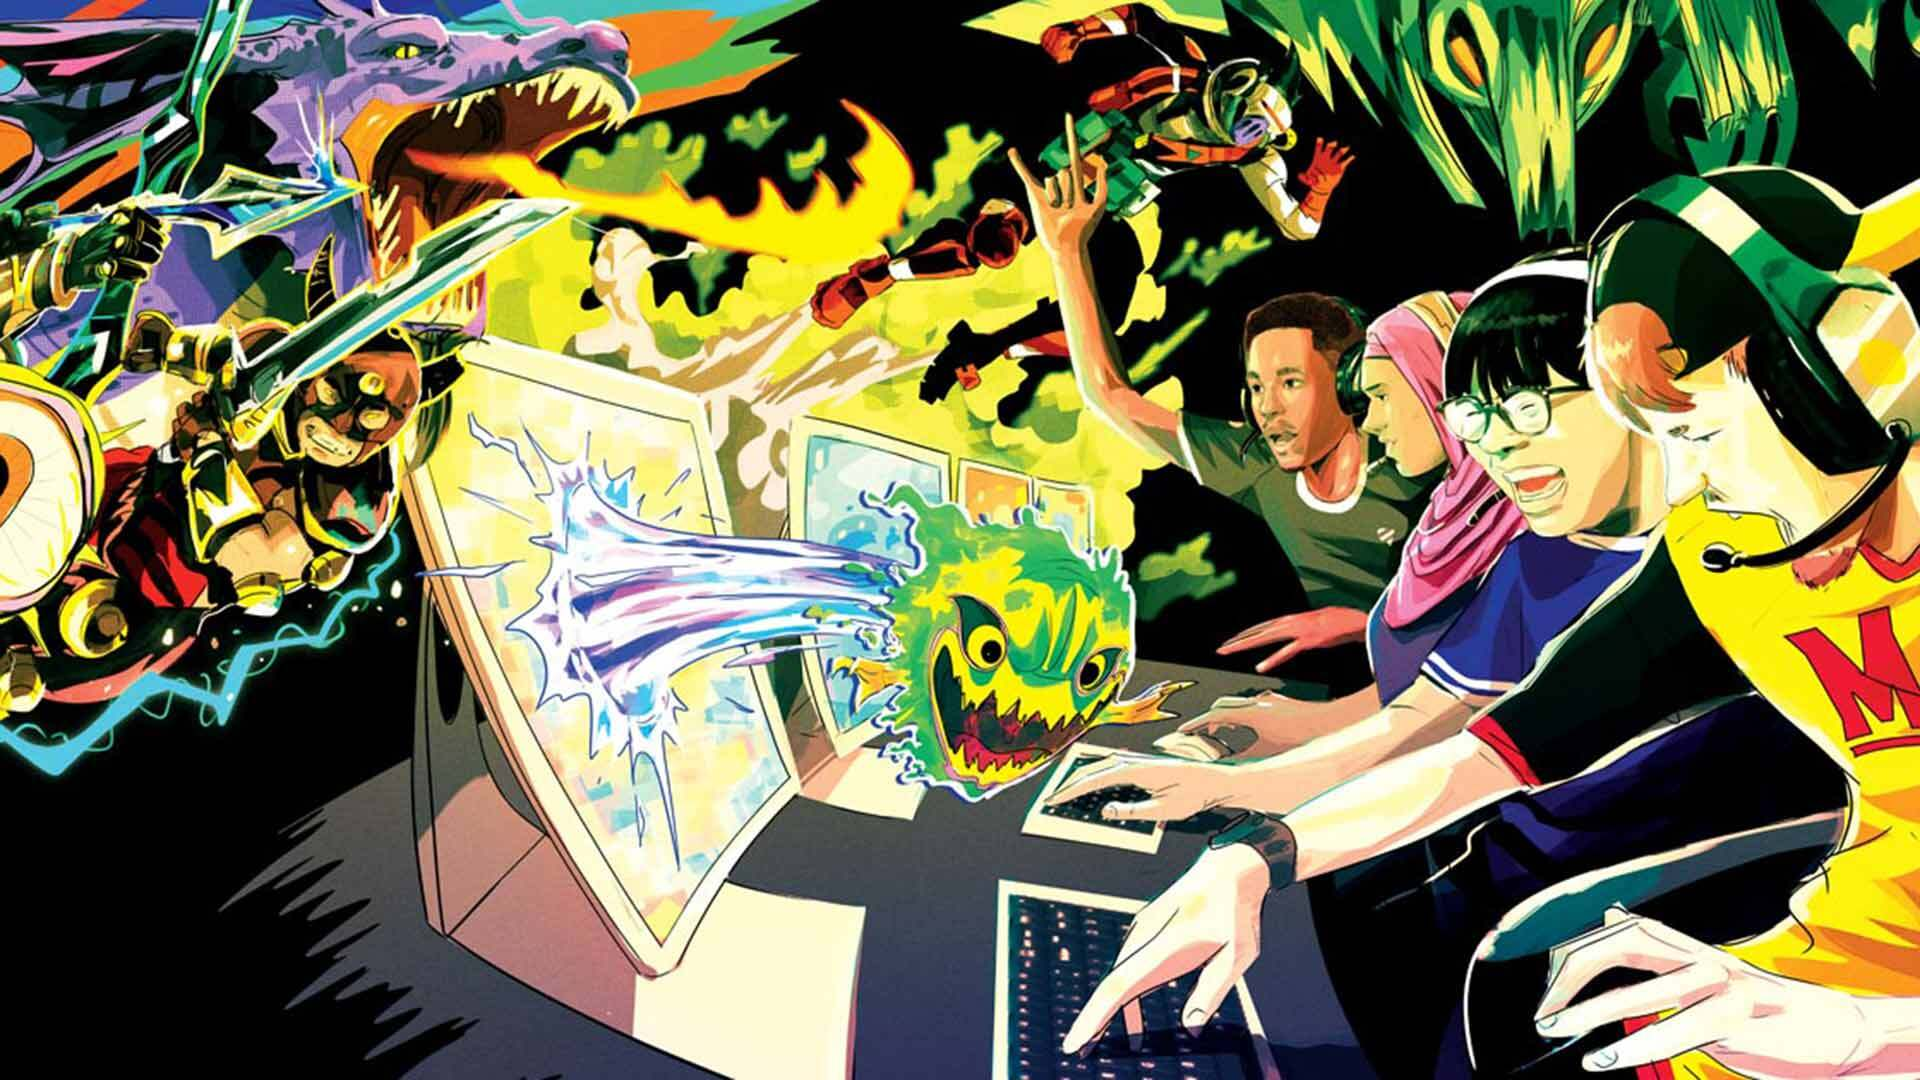 The student group UMCP Gaming has put esports teams into national competitions for thousands of dollars in prizes. University Recreation and Wellness plans to hire its first esports coordinator to provide the same administrative support that club sports now enjoy. Illustration by Ryan Inzana.